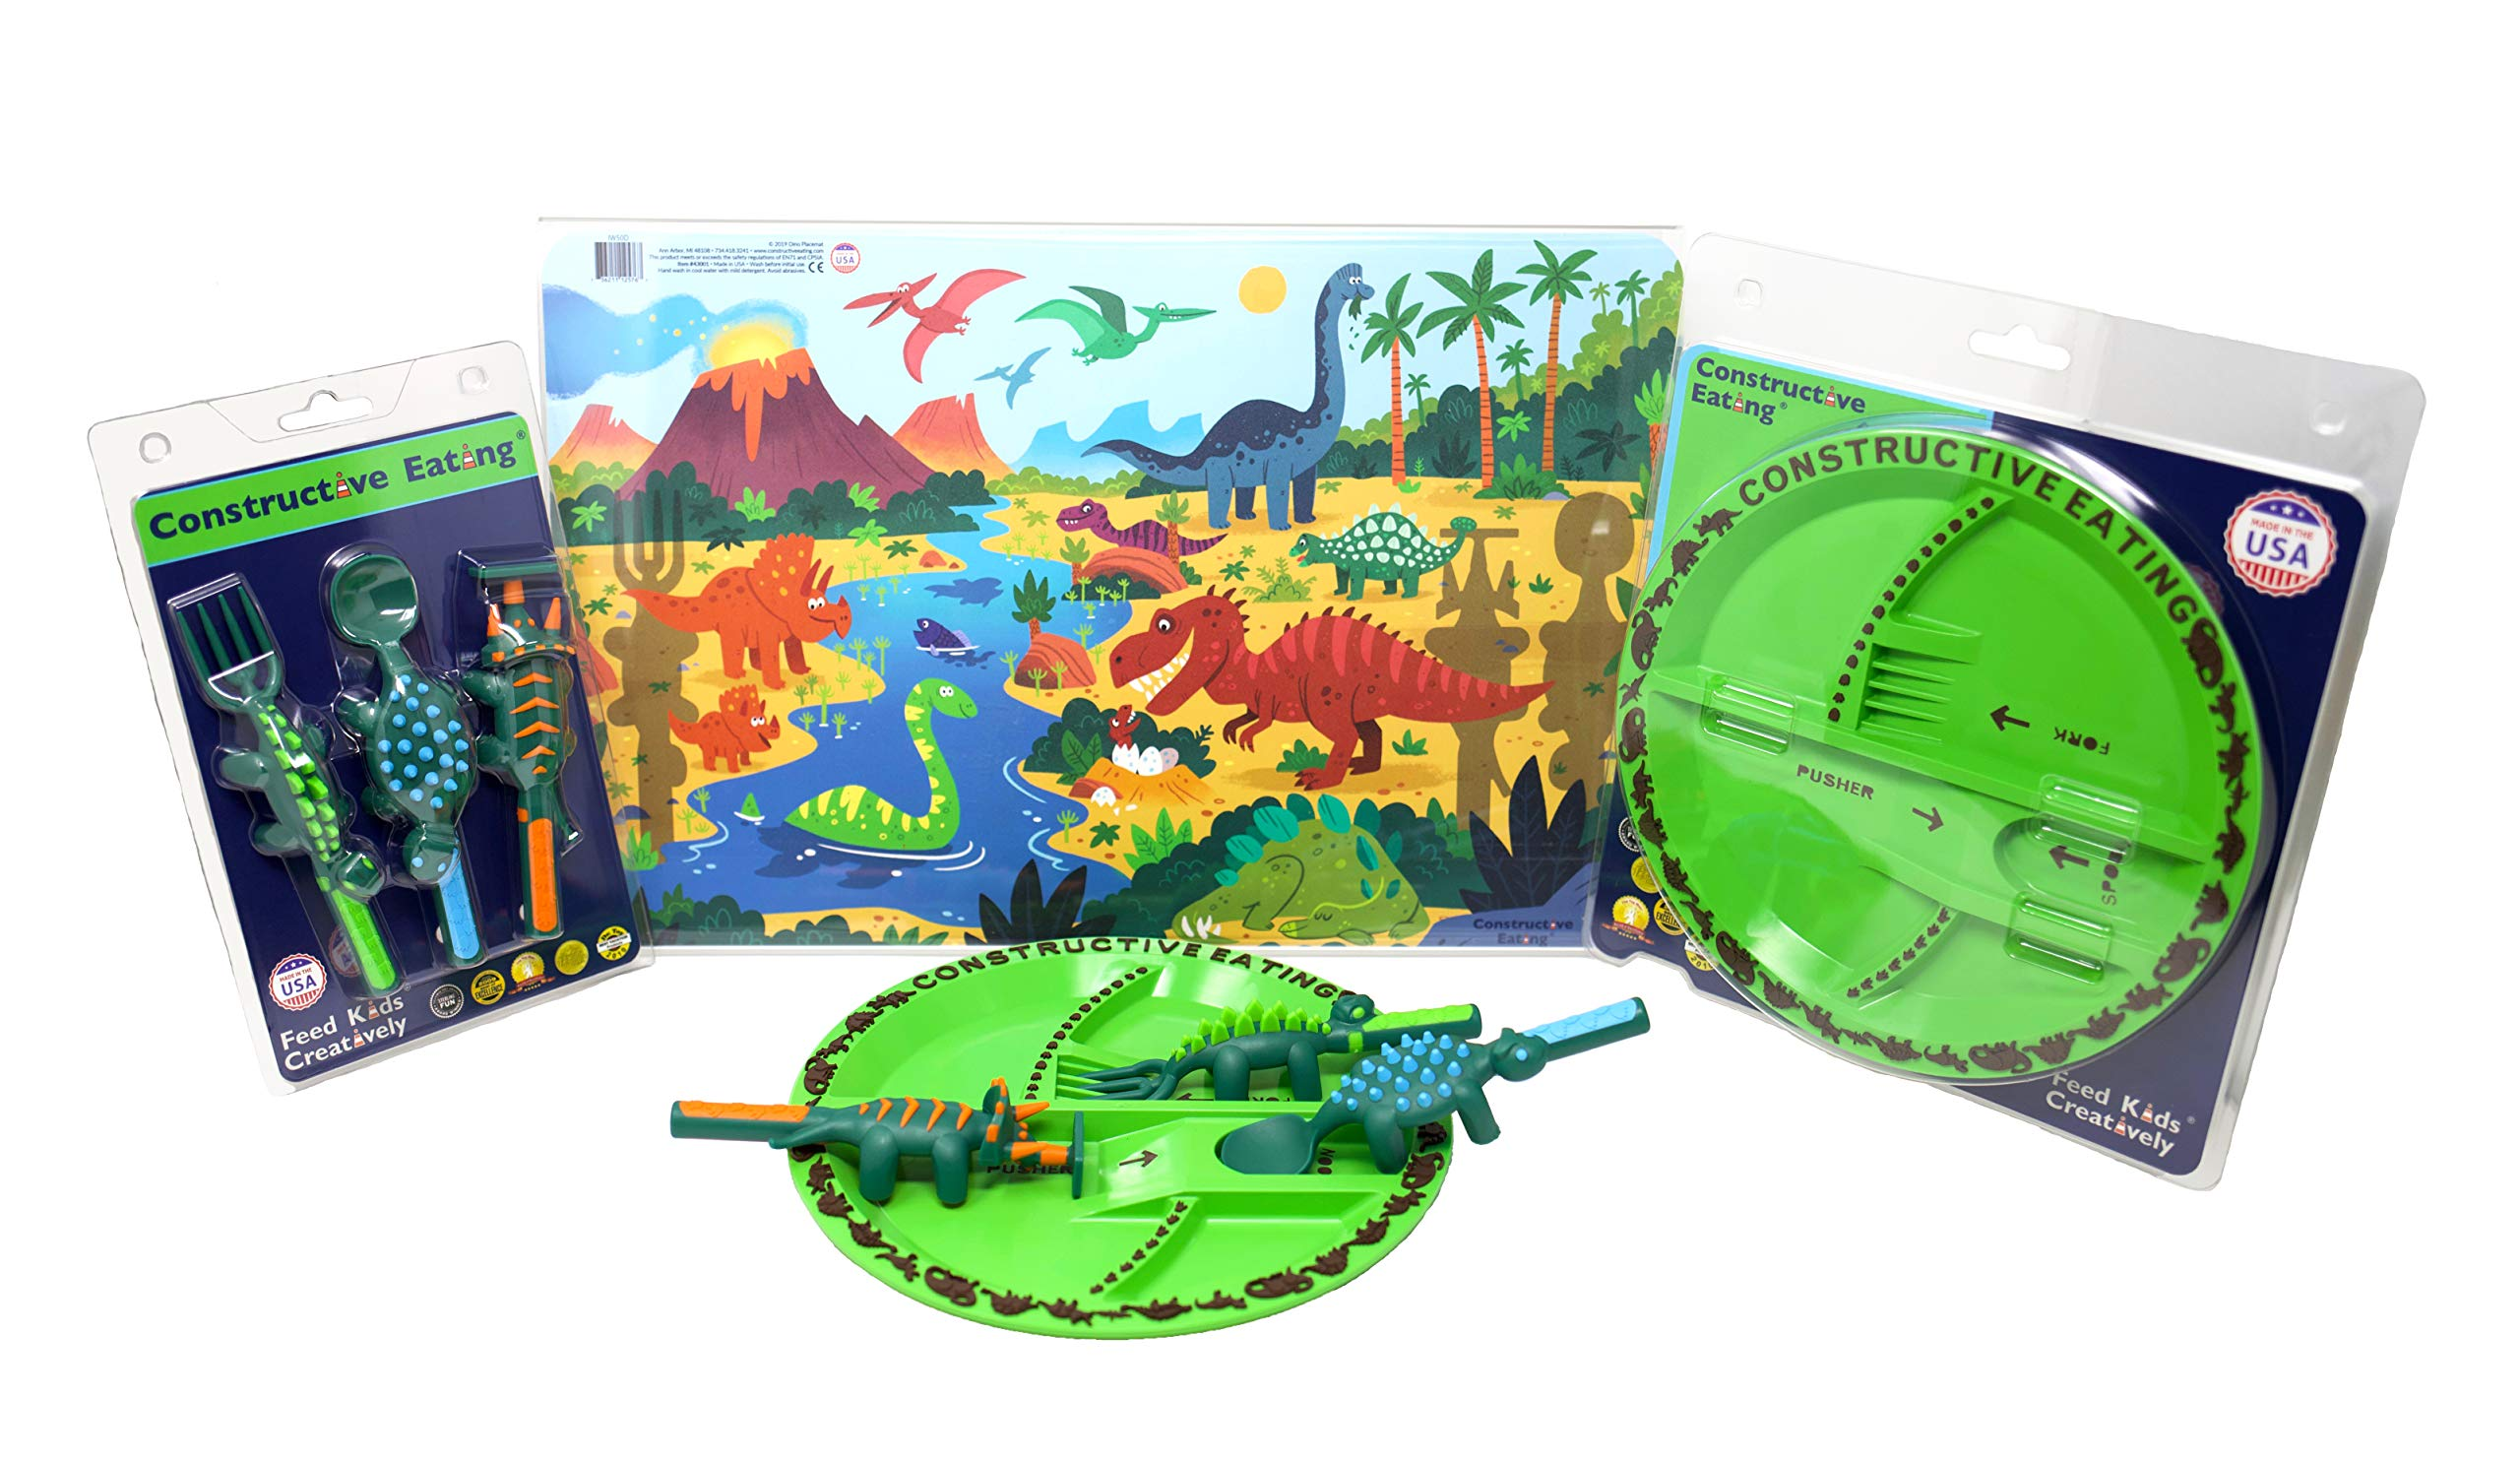 Constructive Eating Dinosaur Combo with Utensil Set, Plate, and Placemat for Toddlers, Infants, Babies and Kids - Flatware Set is Made with FDA Approved Materials for Safe and Fun Eating by Constructive Eating